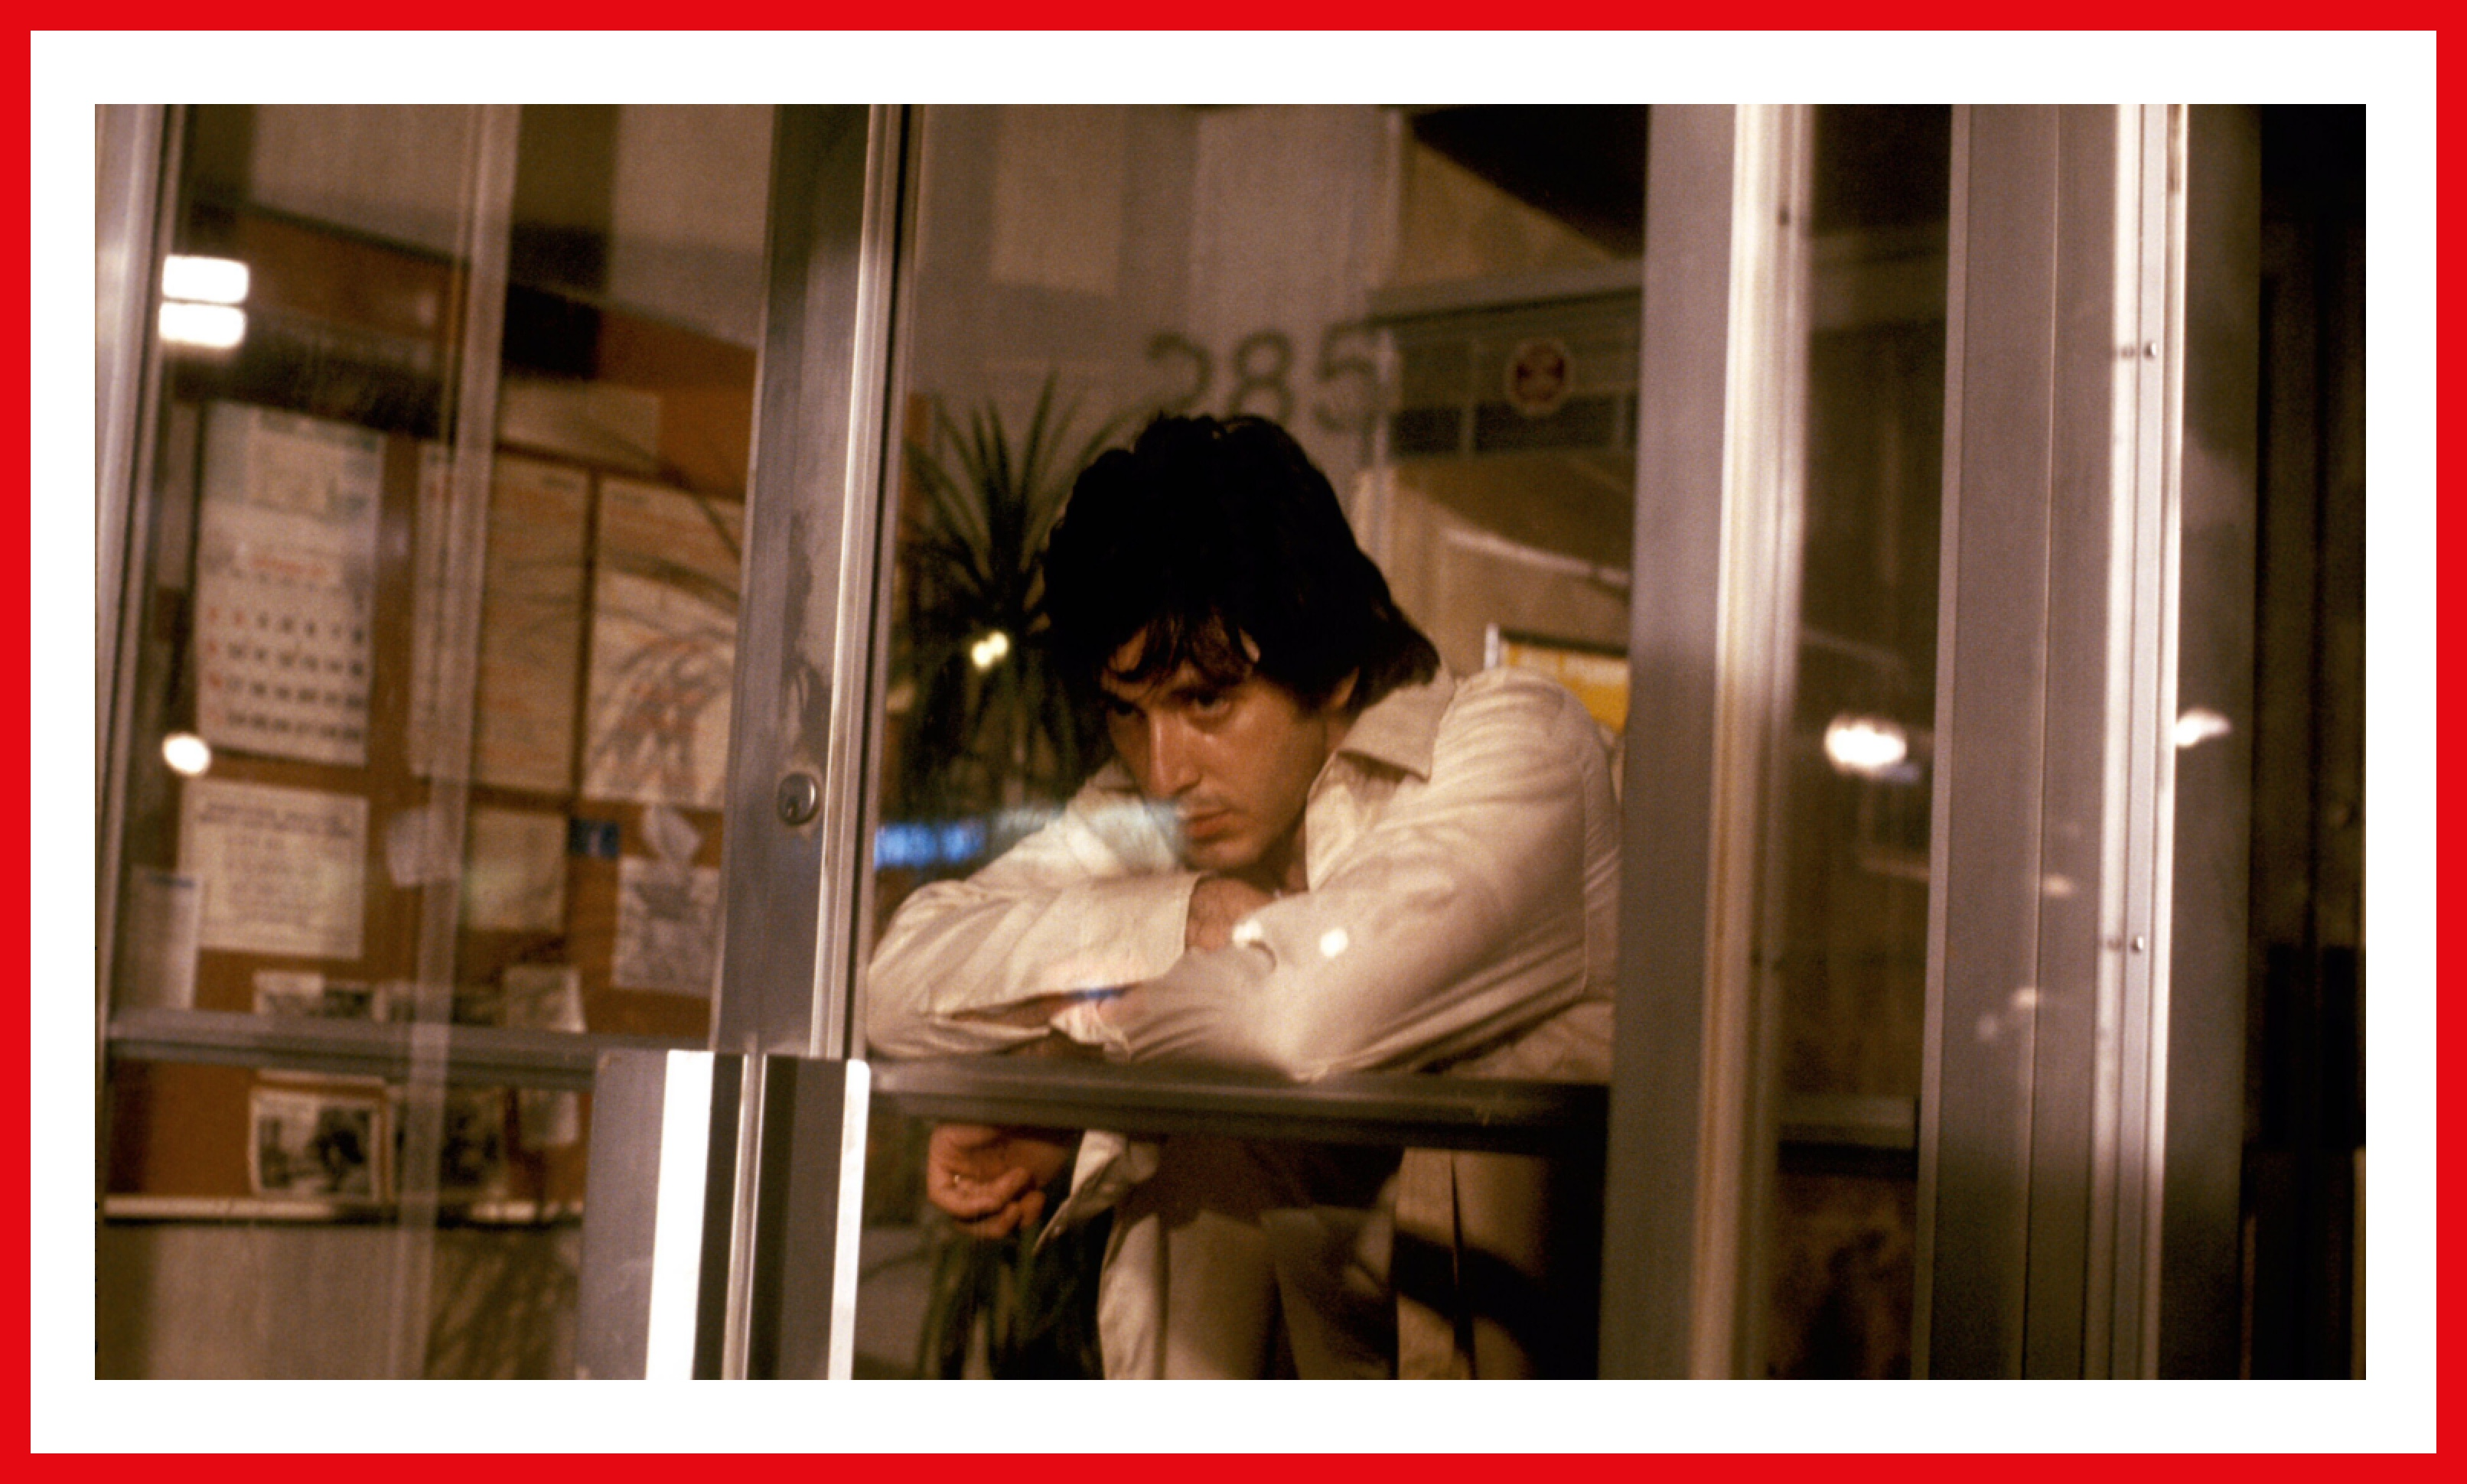 Pacino as Sonny, looking trapped inside the bank he's trying to rob.